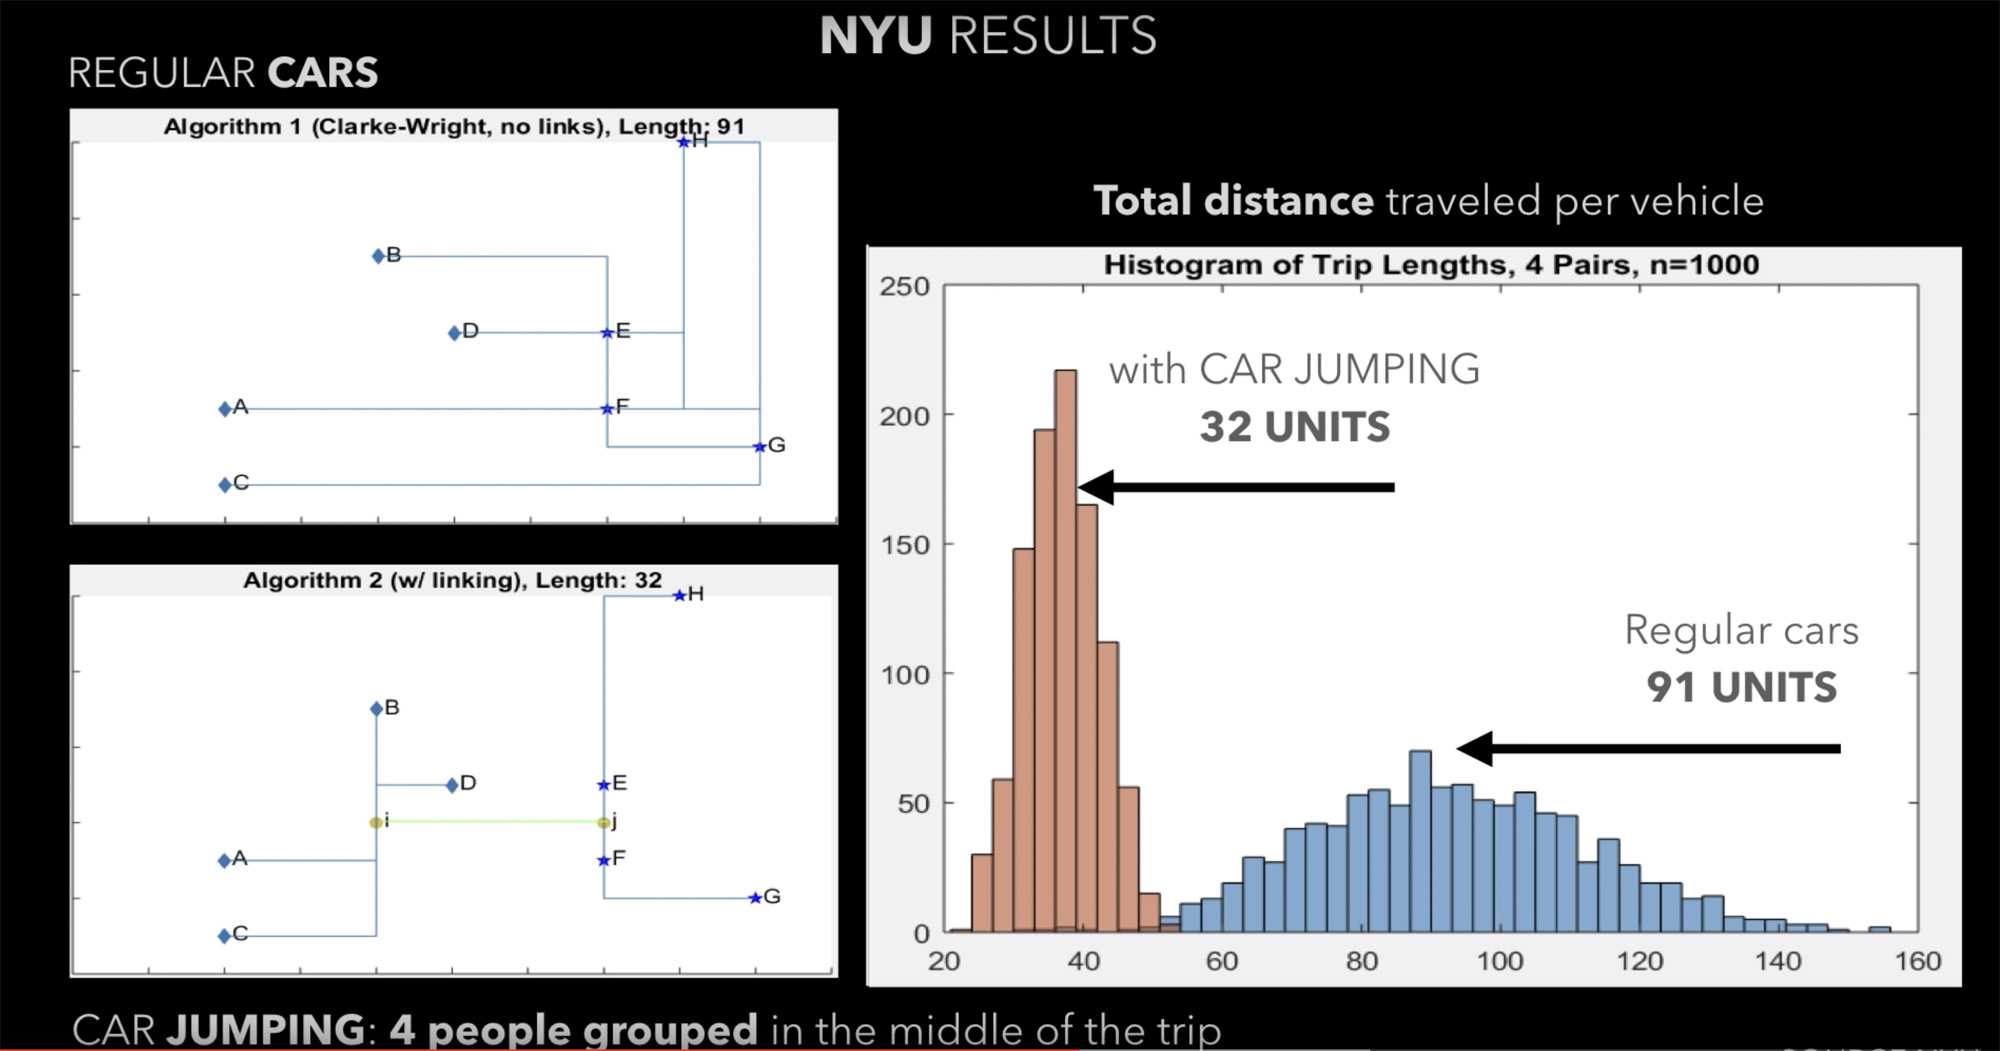 Graphs showing results of research on car jumping